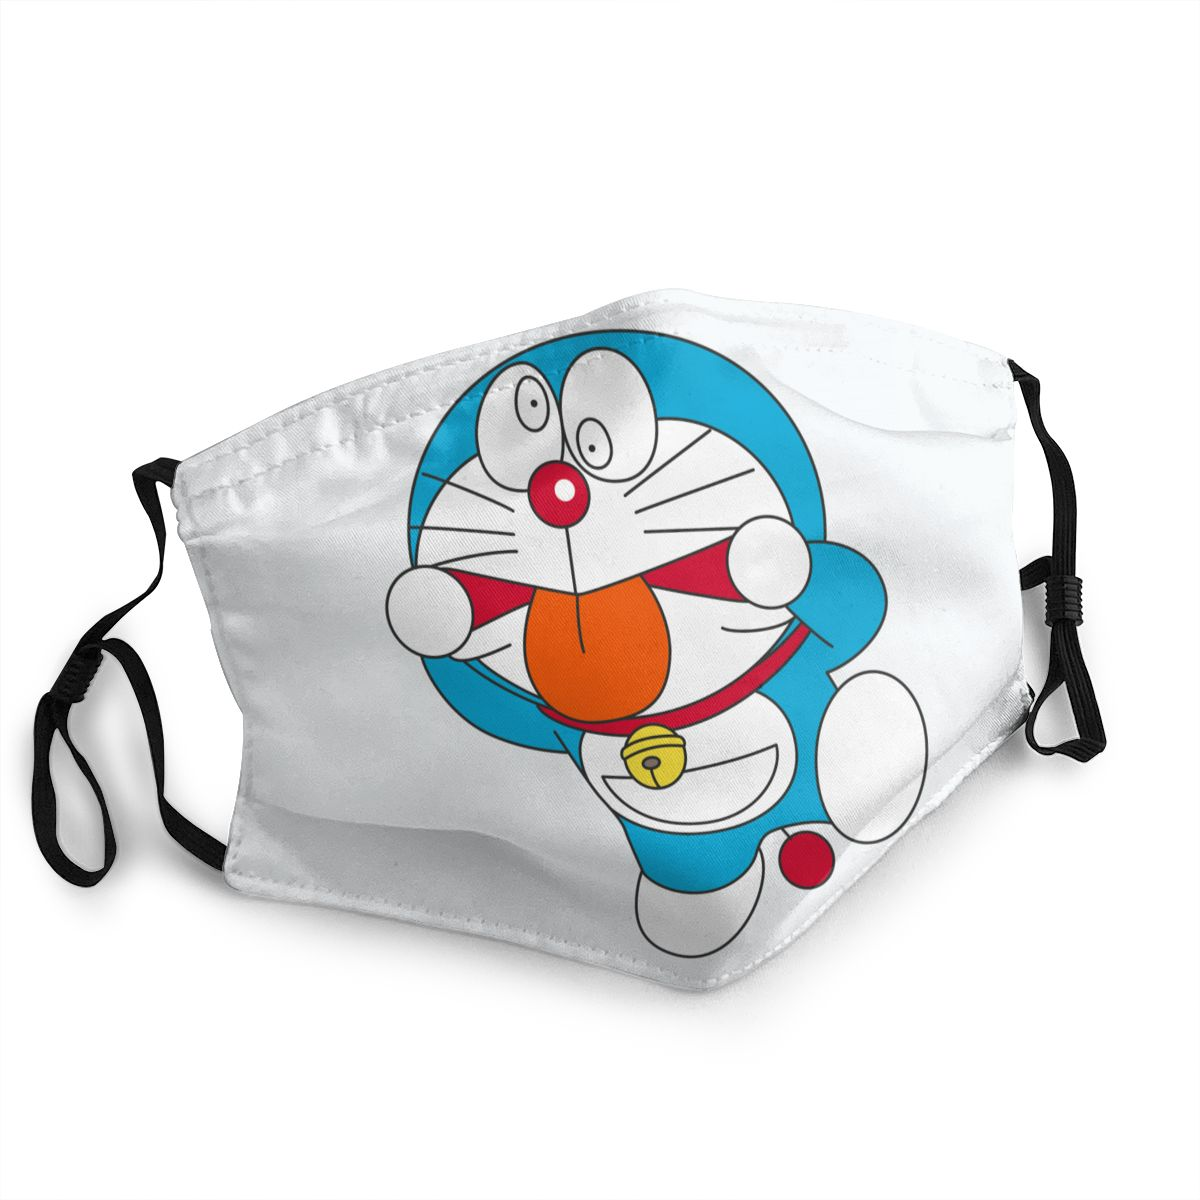 Doraemon Mug Non-Disposable Face Mask Anti Bacterial Dust Mask Protection Mask Respirator Mouth Muffle